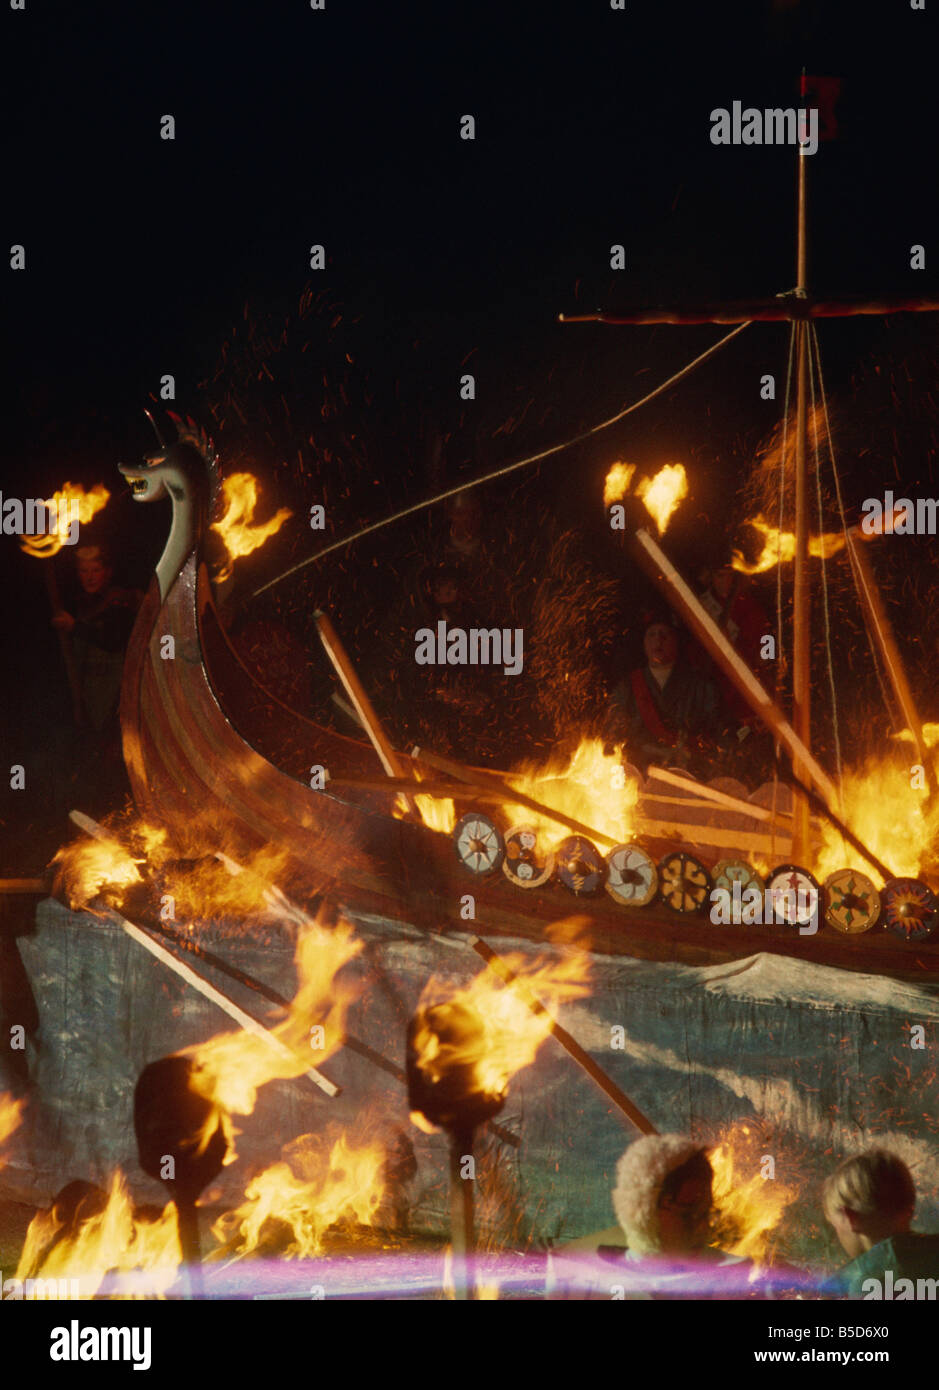 Up Helly Aa Festival, Shetlands, Scotland, Europe Stock Photo